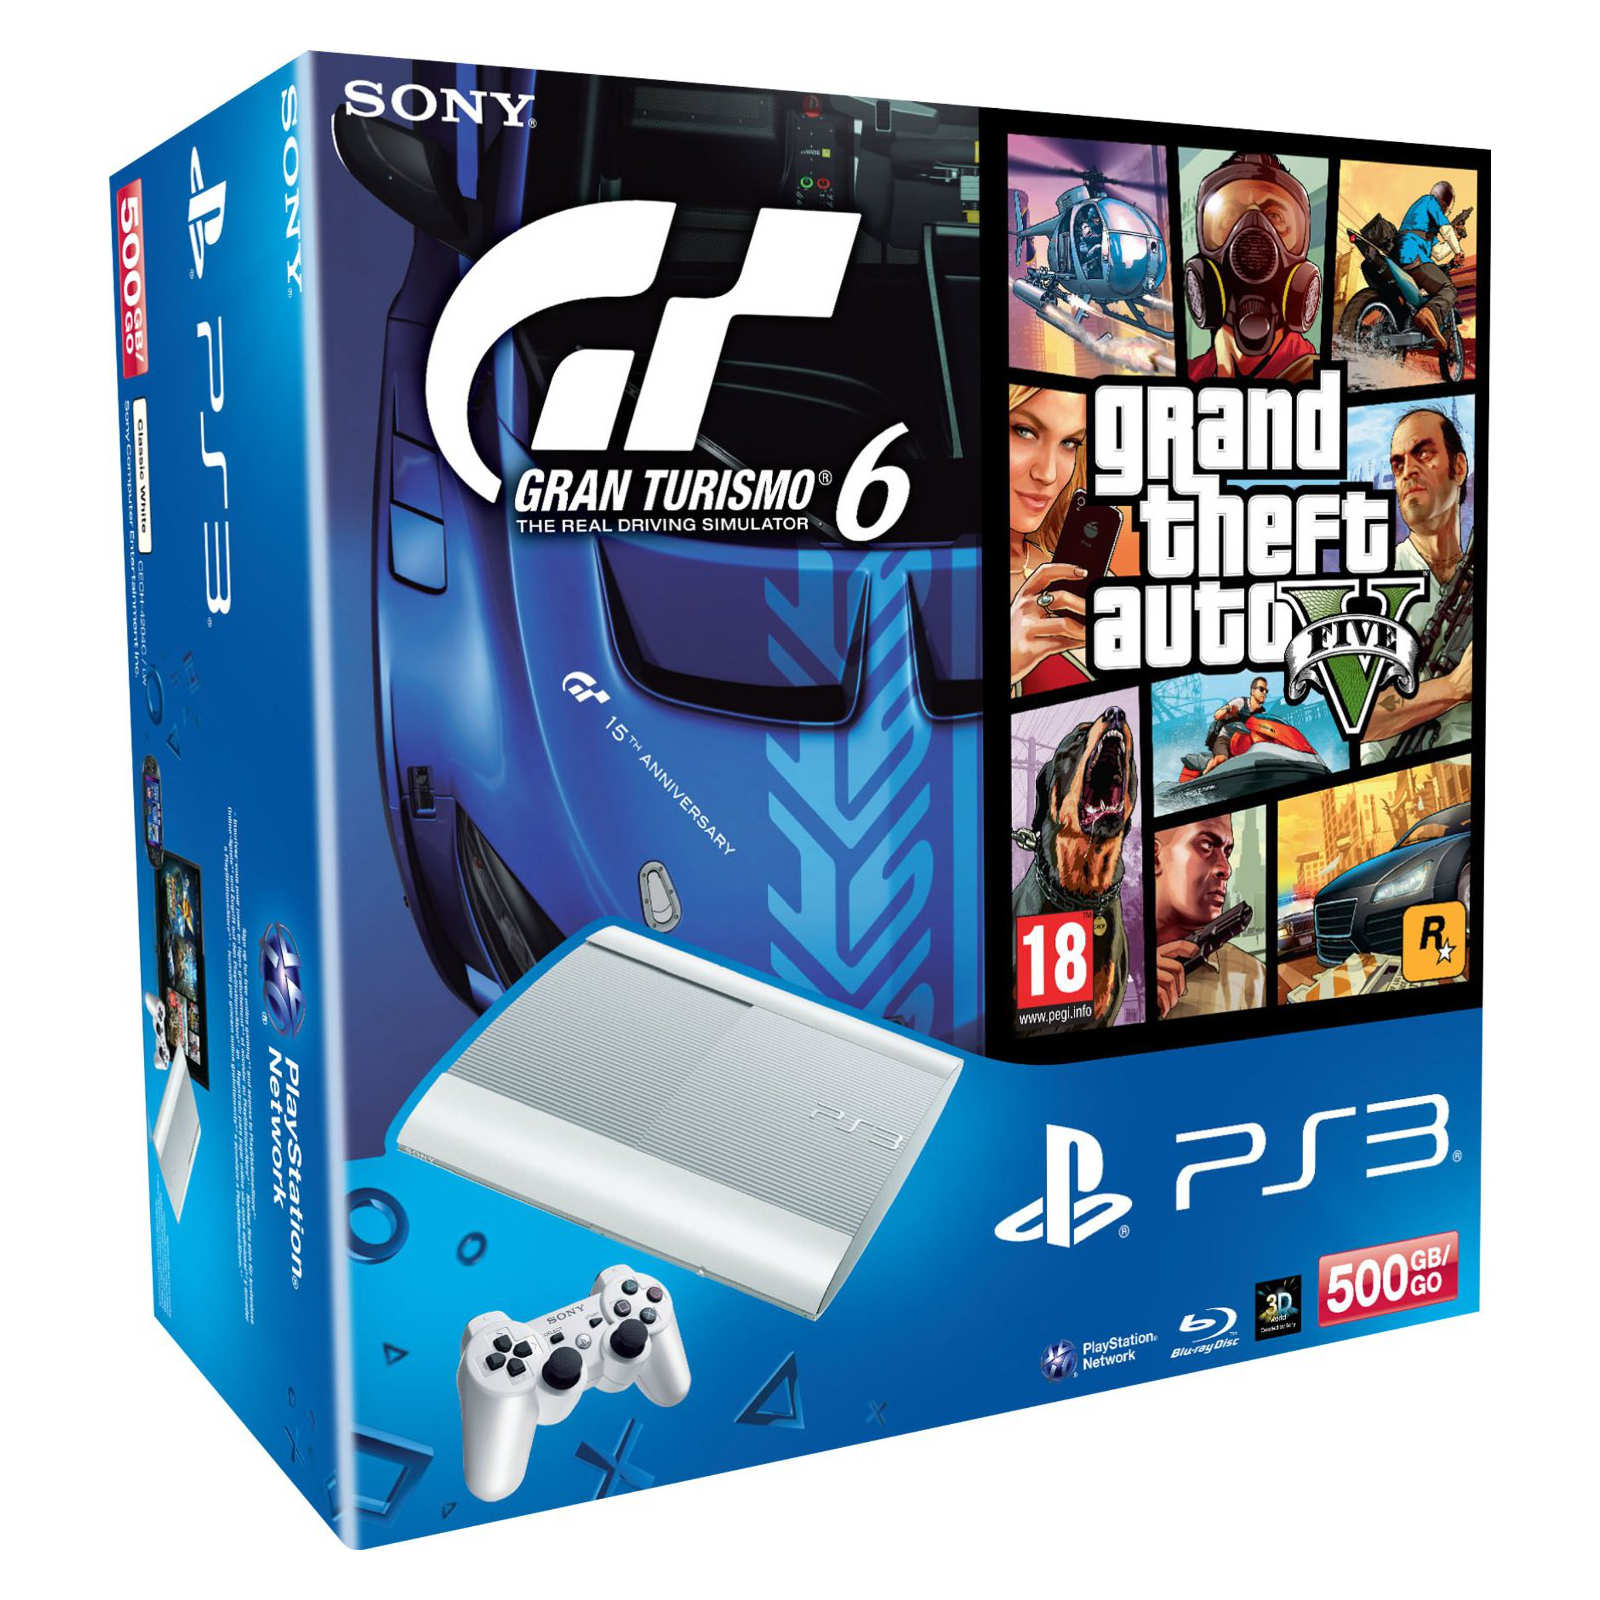 sony playstation 3 ultra slim blanche 500 go gta v gran turismo 6 sony. Black Bedroom Furniture Sets. Home Design Ideas